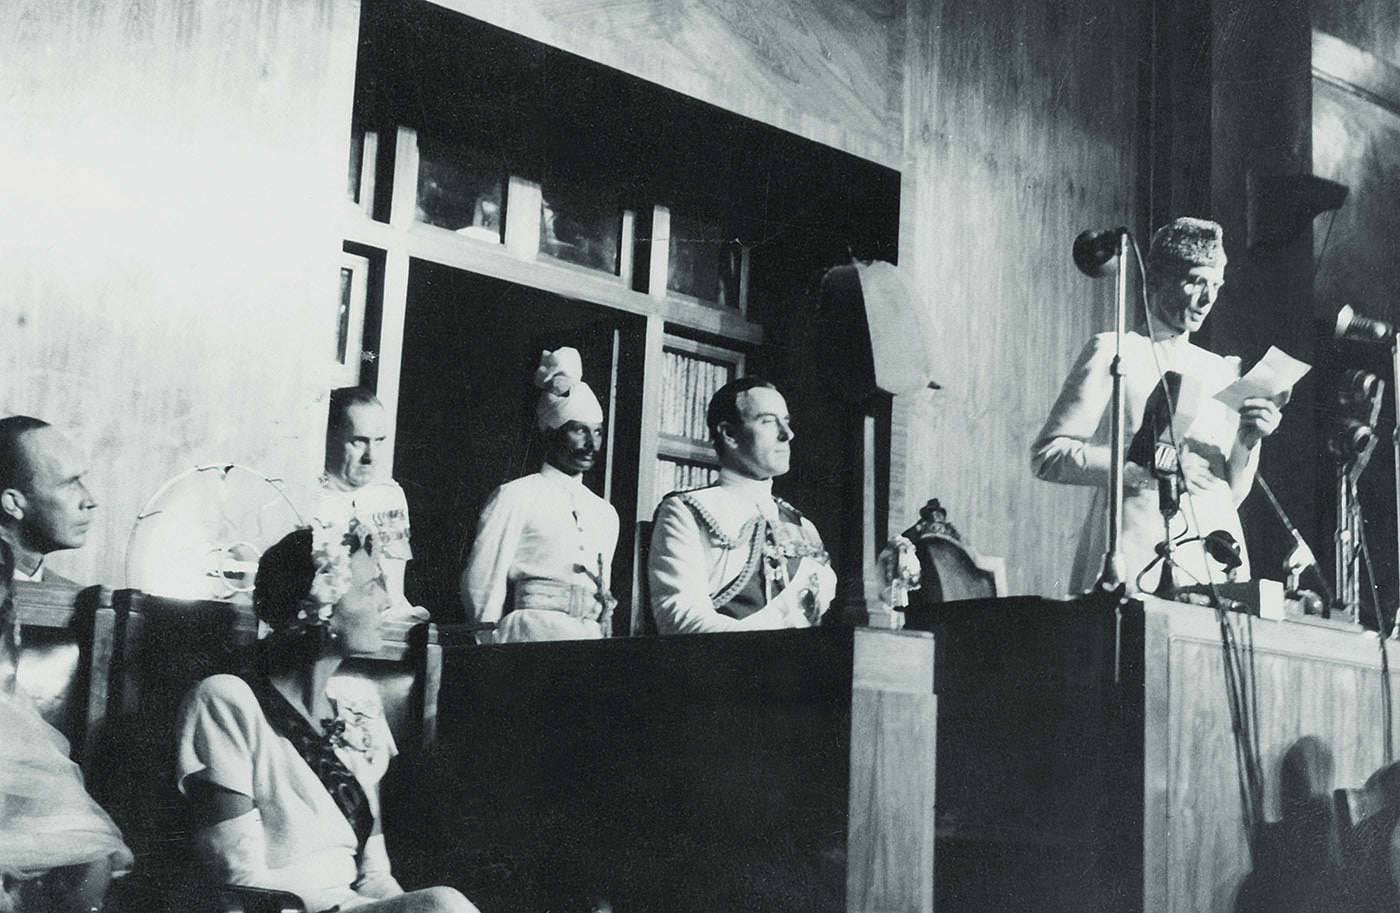 Quaid-i-Azam Mohammad Ali Jinnah delivers his reply to the Viceroy's address at the Constituent Assembly of Pakistan to mark the transfer of power between the British Government and Pakistan and India. — Courtesy National Archives Islamabad